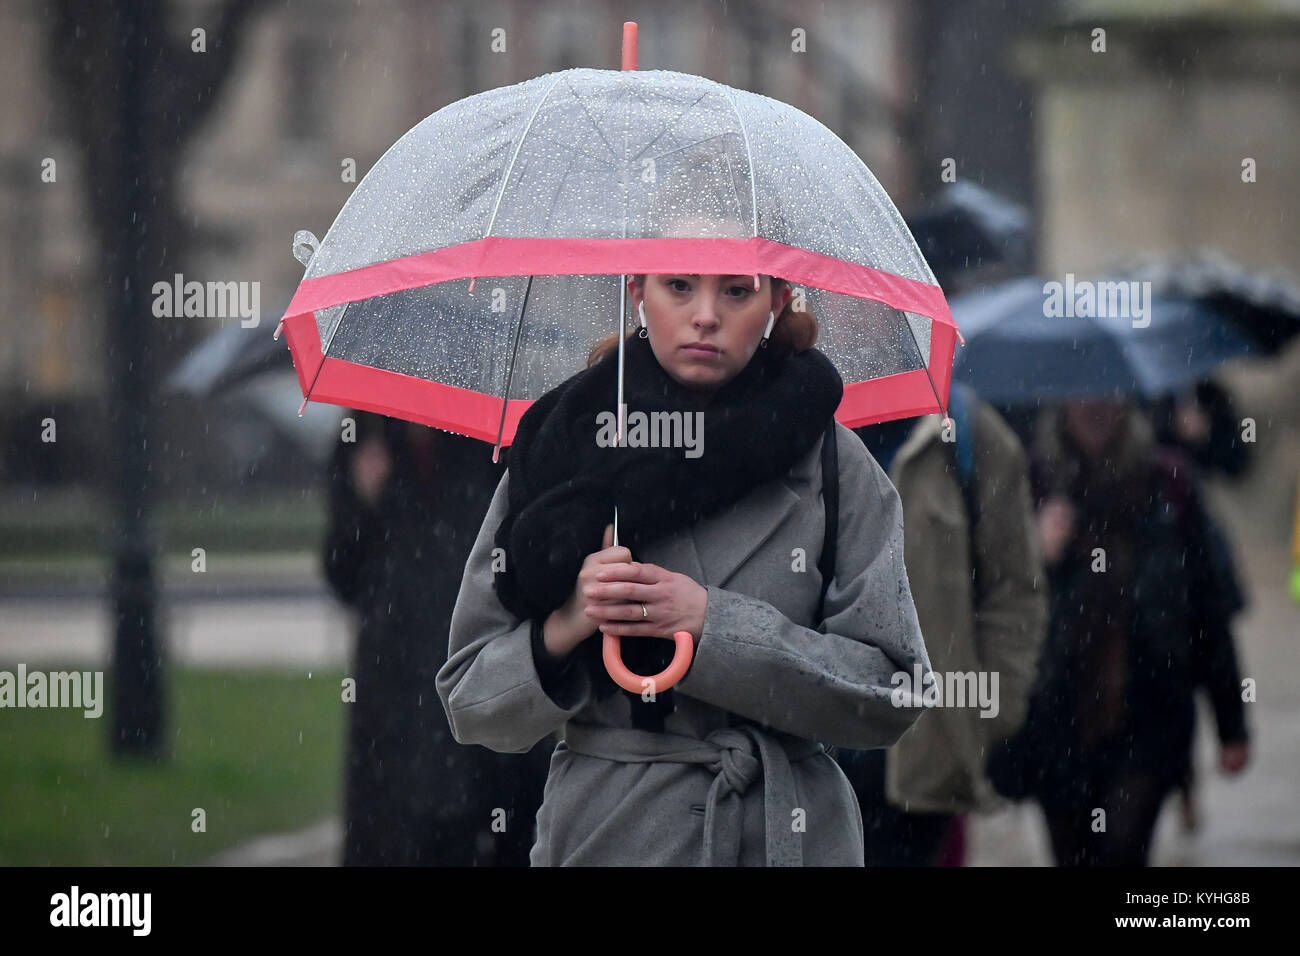 A woman holds an umbrella in pouring rain as people commute to work through Queen's Square in Bristol, on what - Stock Image